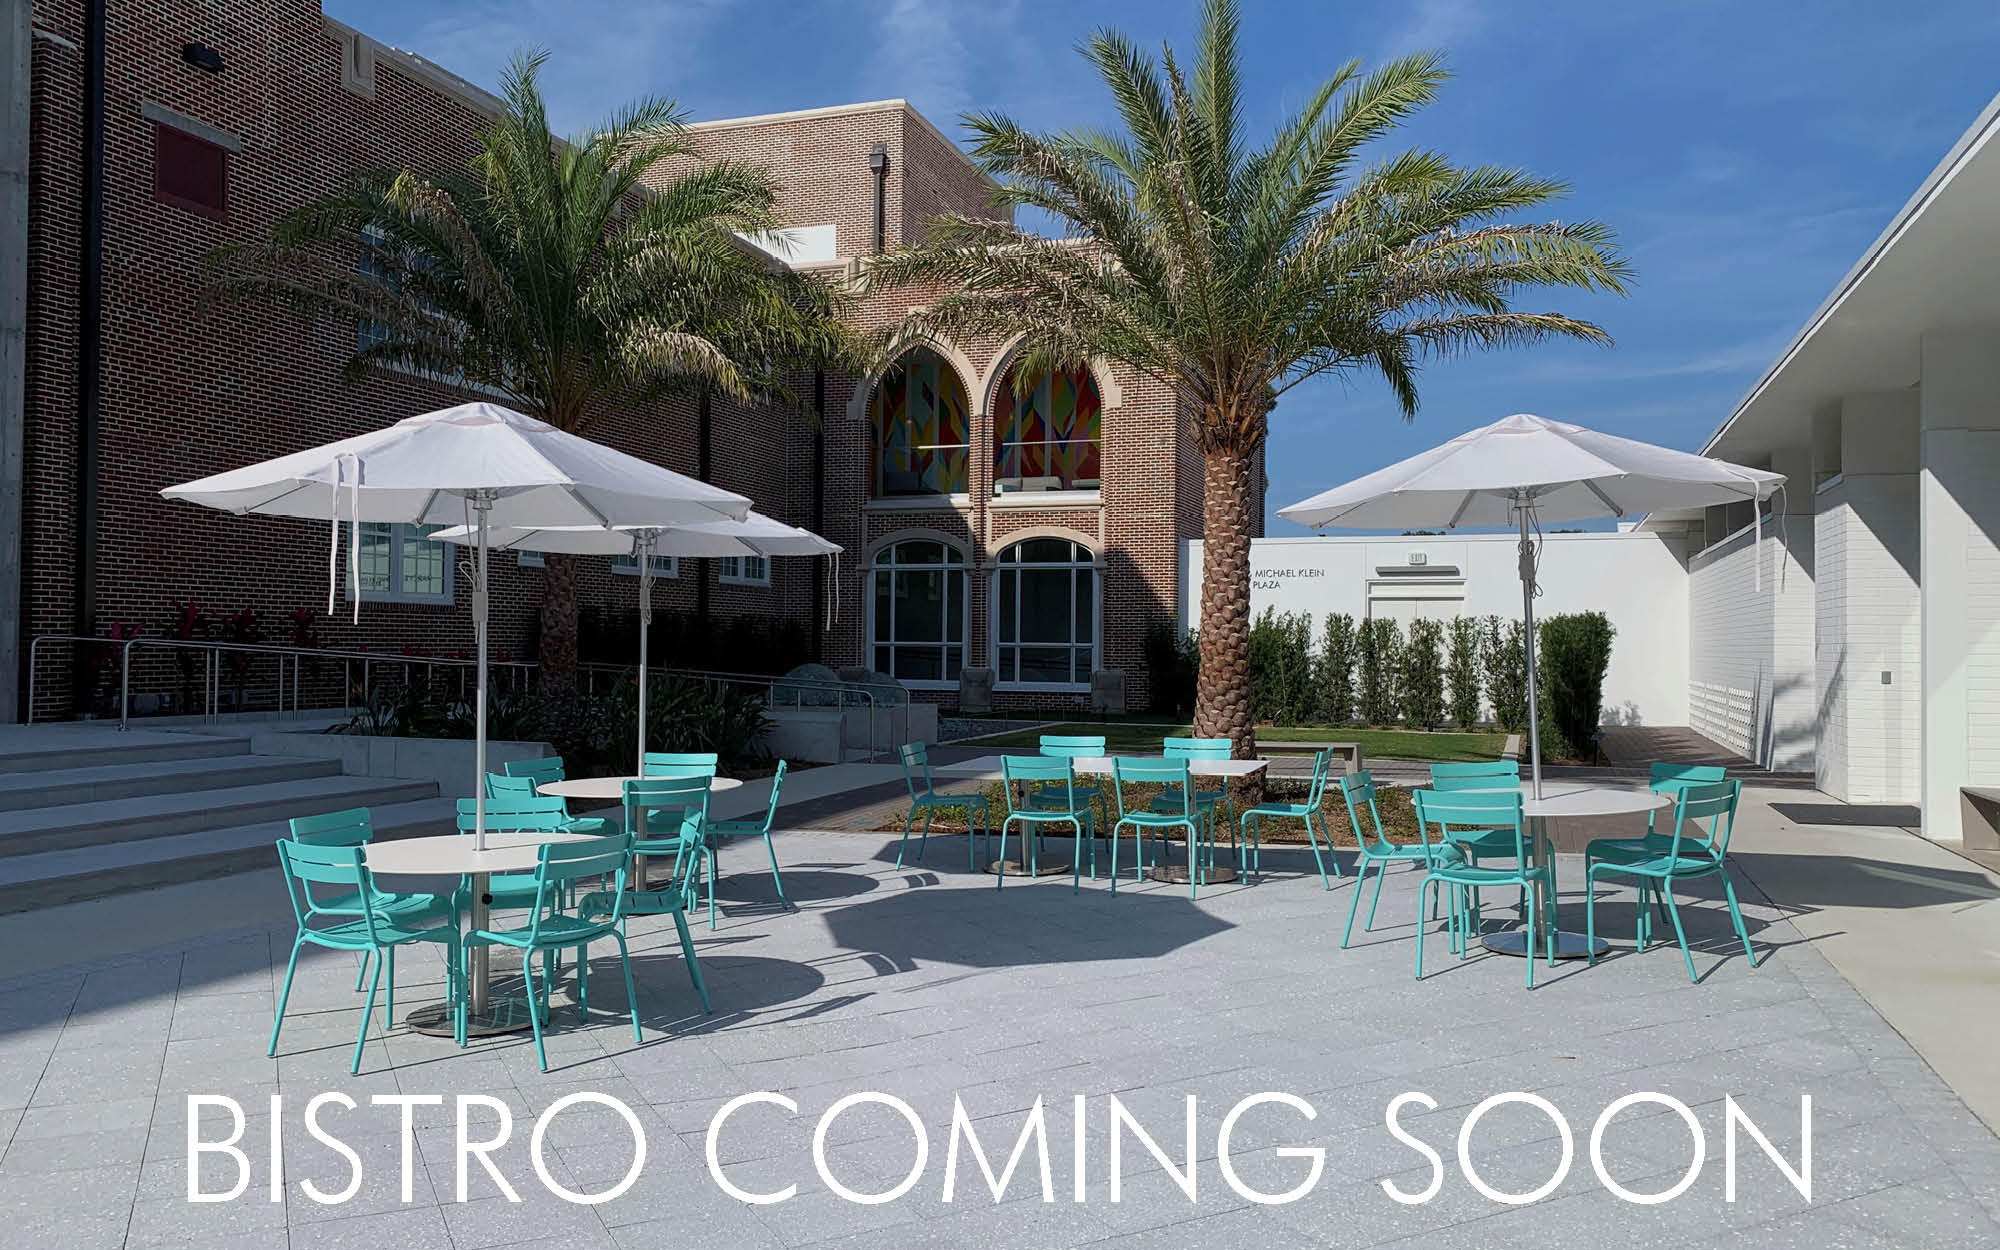 Bistro Coming Soon- Enjoy the Marcy & Michael Klein Plaza in the meantime